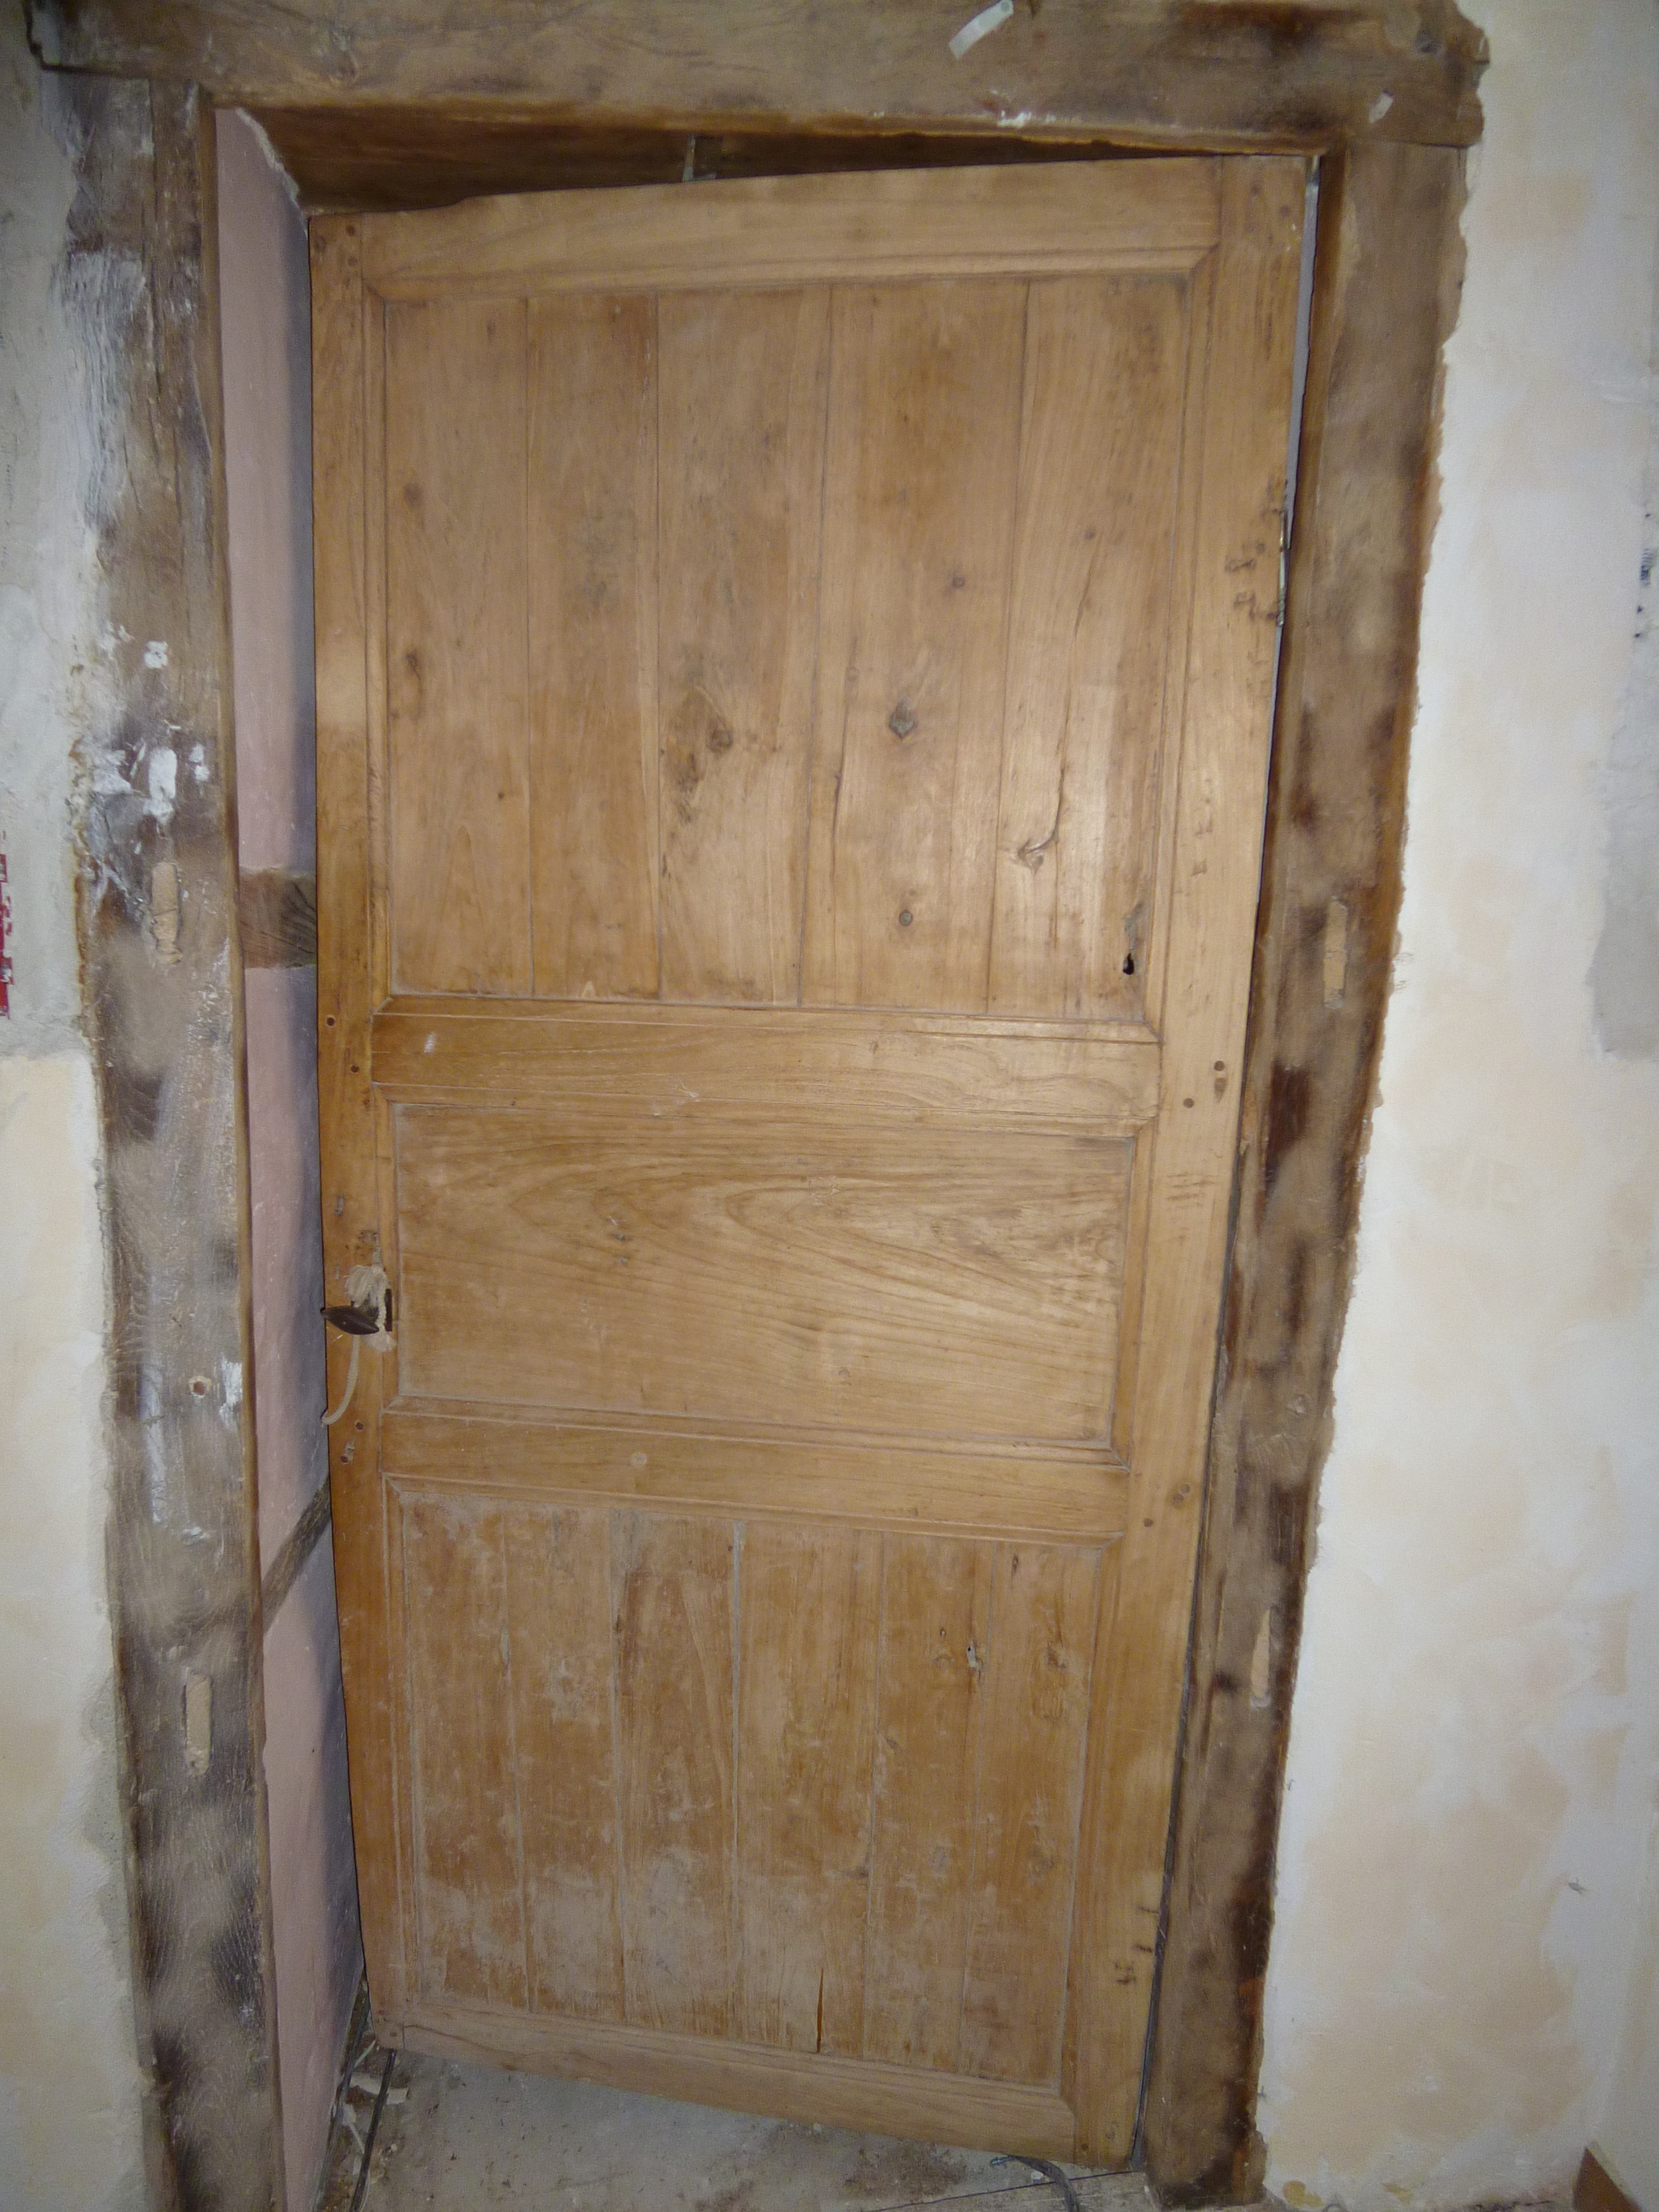 The old door from the cuisine to the hallway.